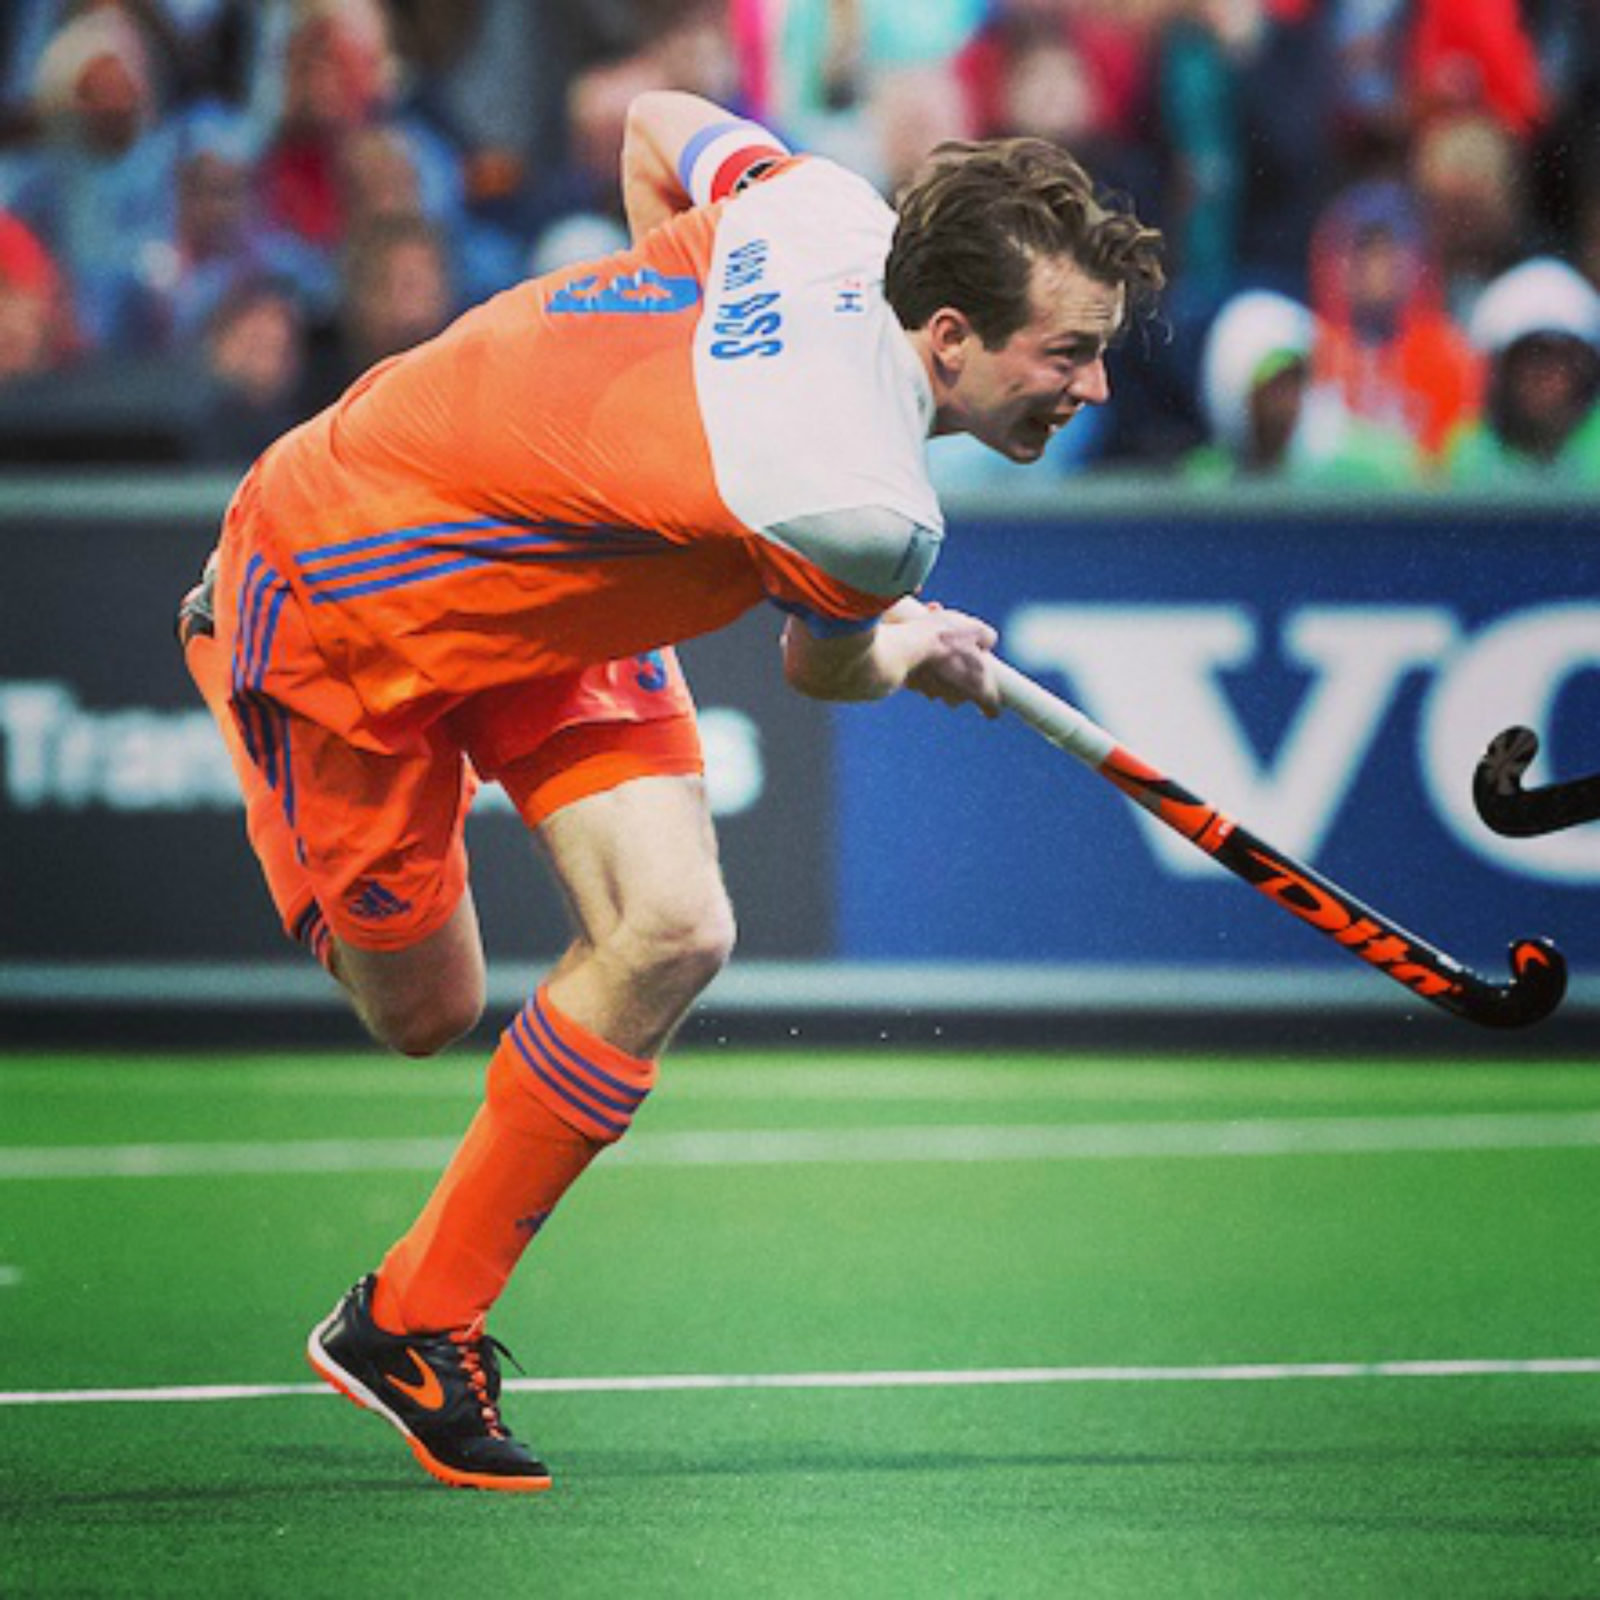 Hockey_Seve Van Ass_EK